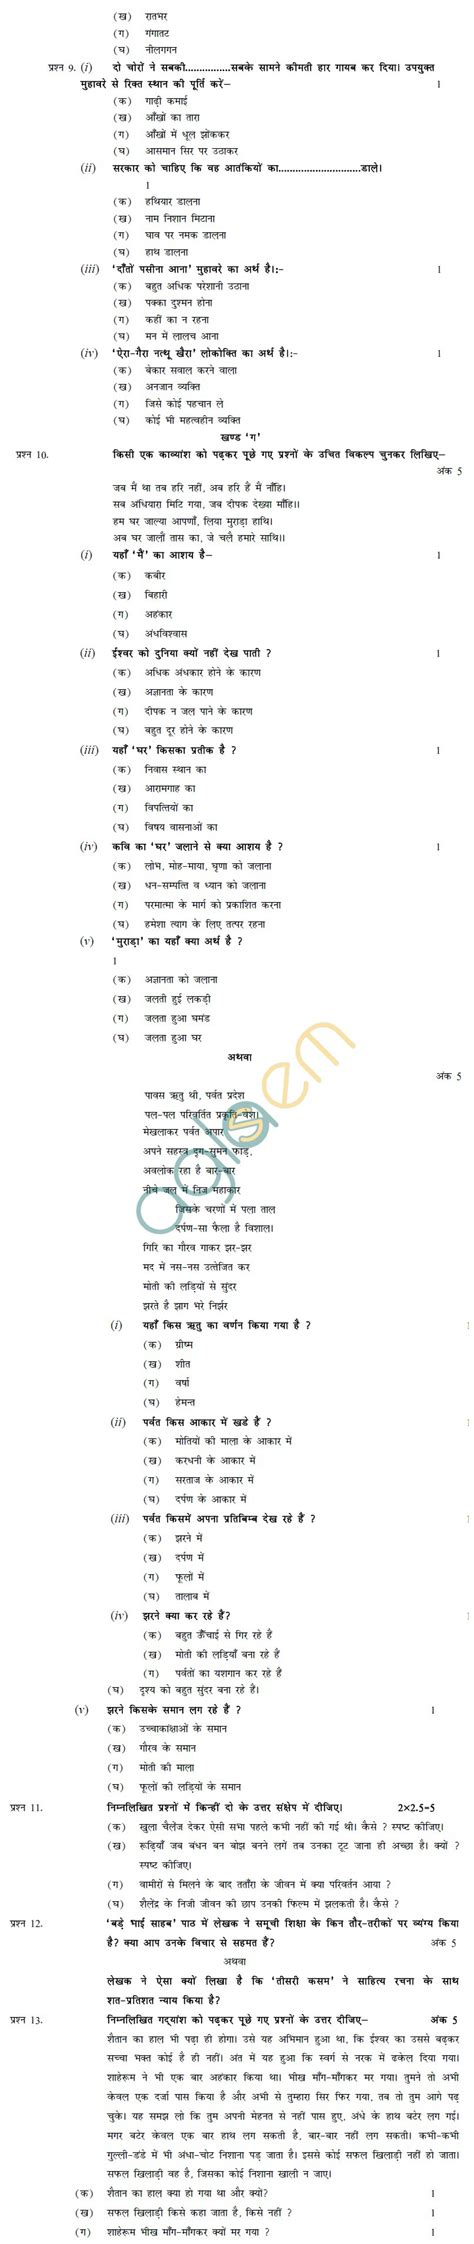 cbse board sle questions cbse papers cbse result cbse cbse sle papers for class 10 sa1 hindi course b 2014